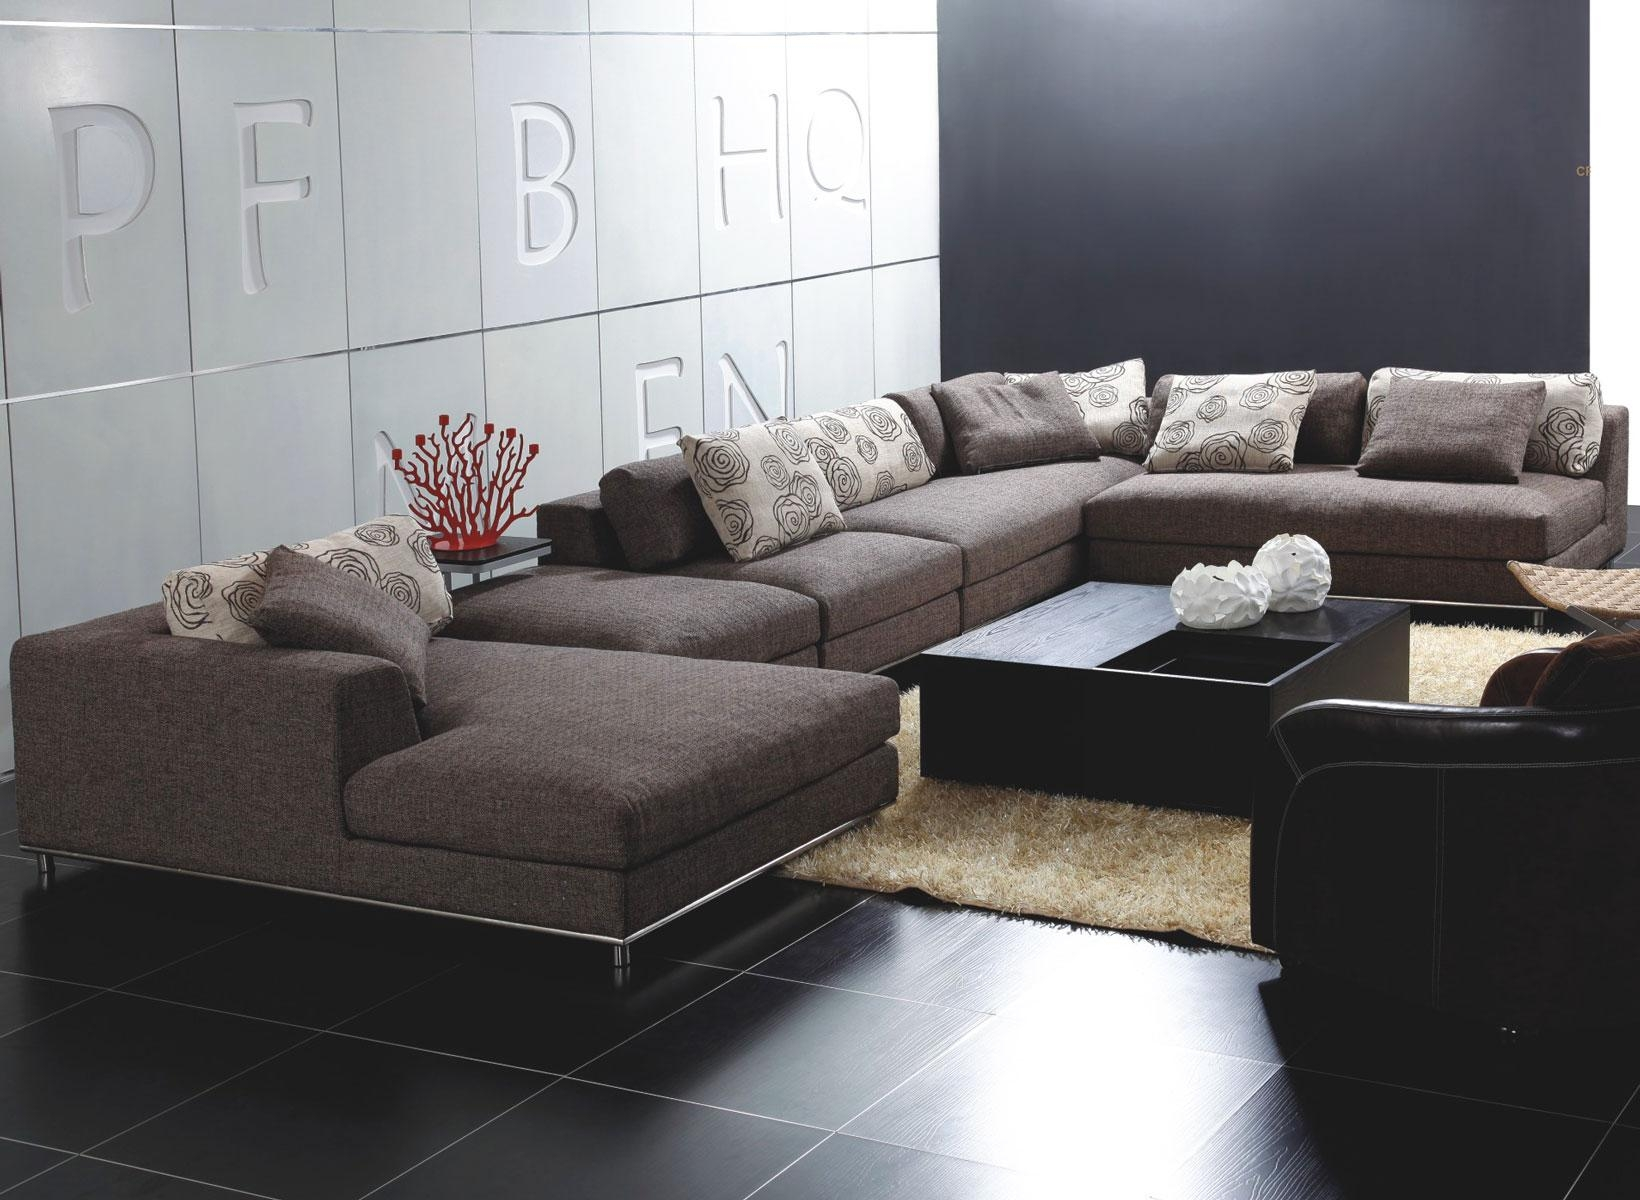 Popular Photo of Backless Sectional Sofa